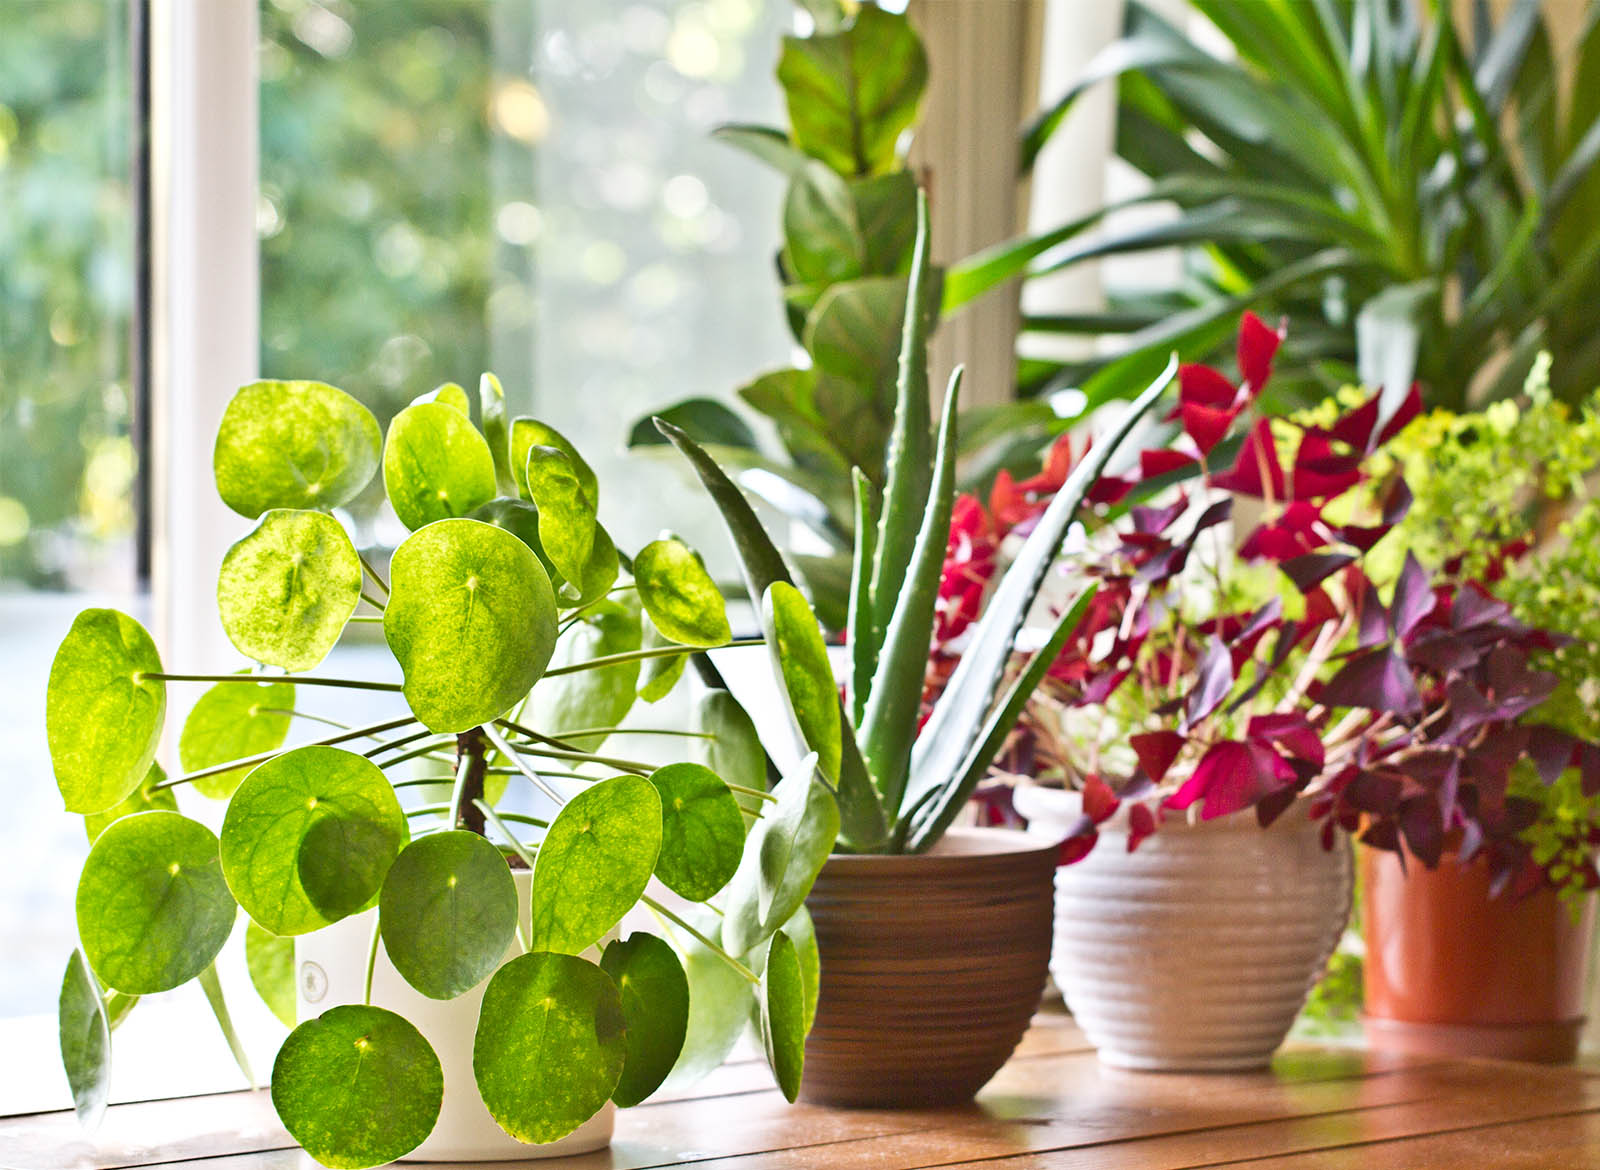 10 Most Popular Houseplants For Spring: Our Predictions